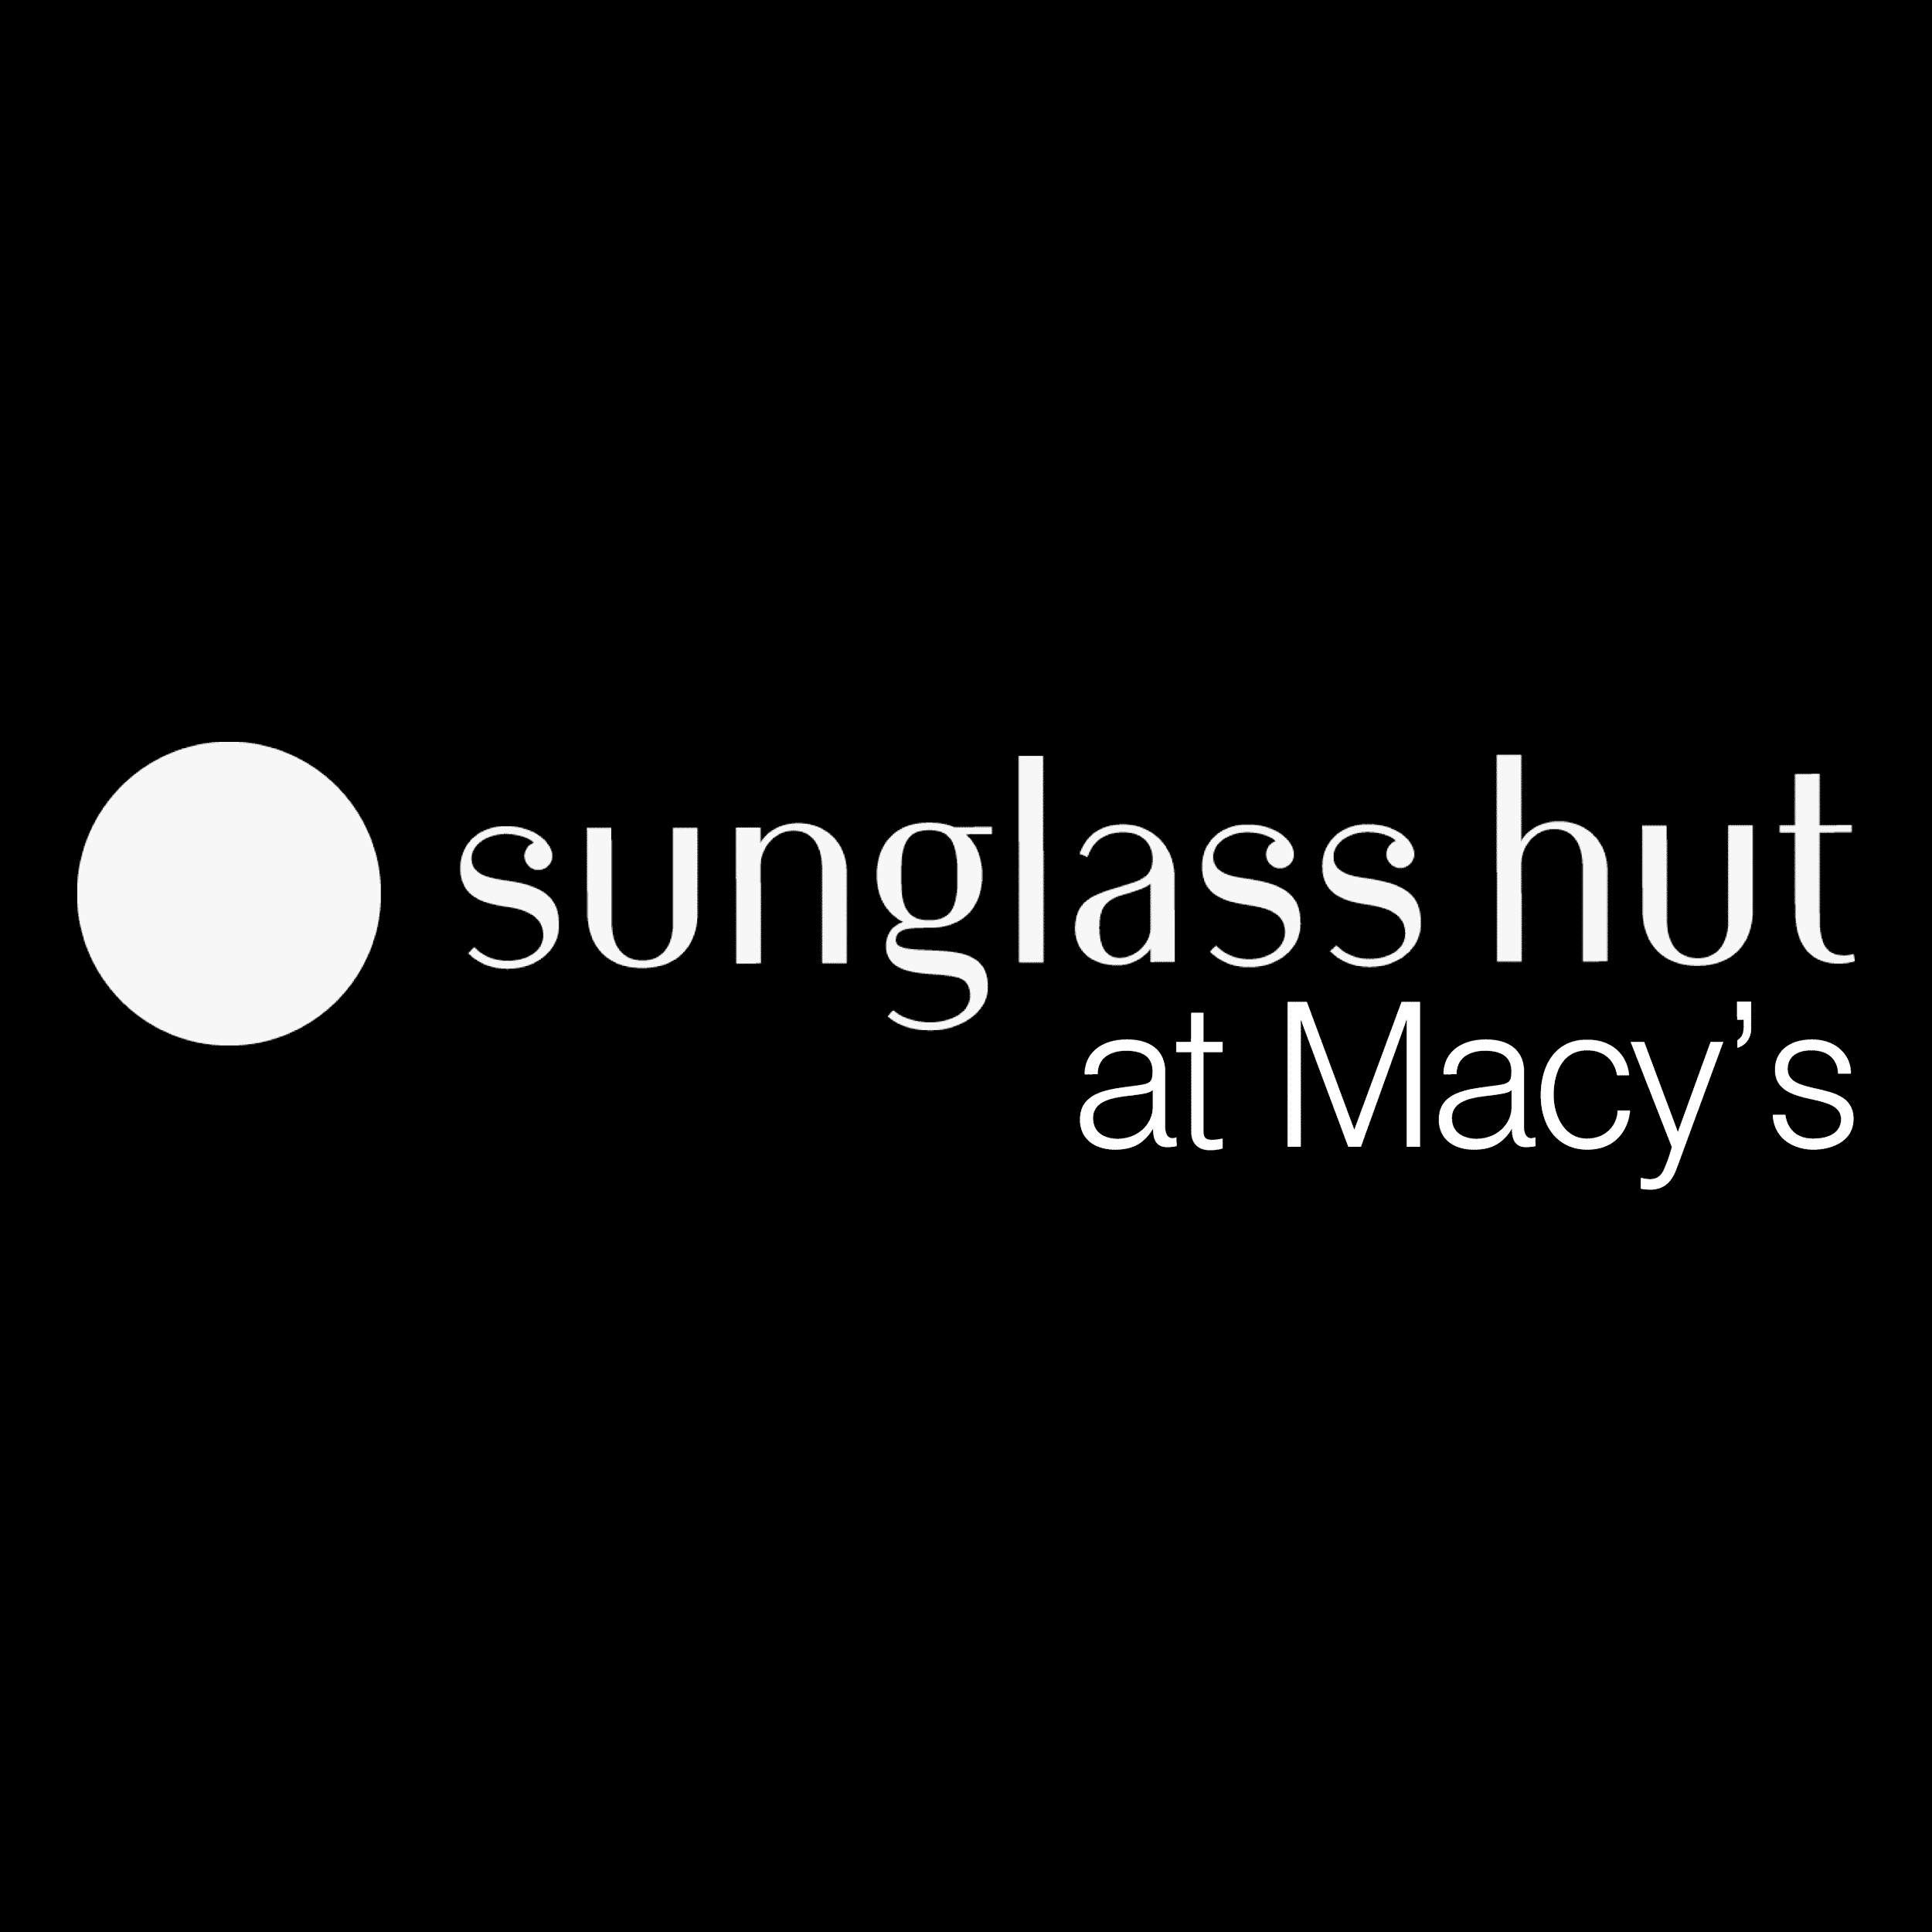 Sunglass Hut at Macy's - Closed image 0